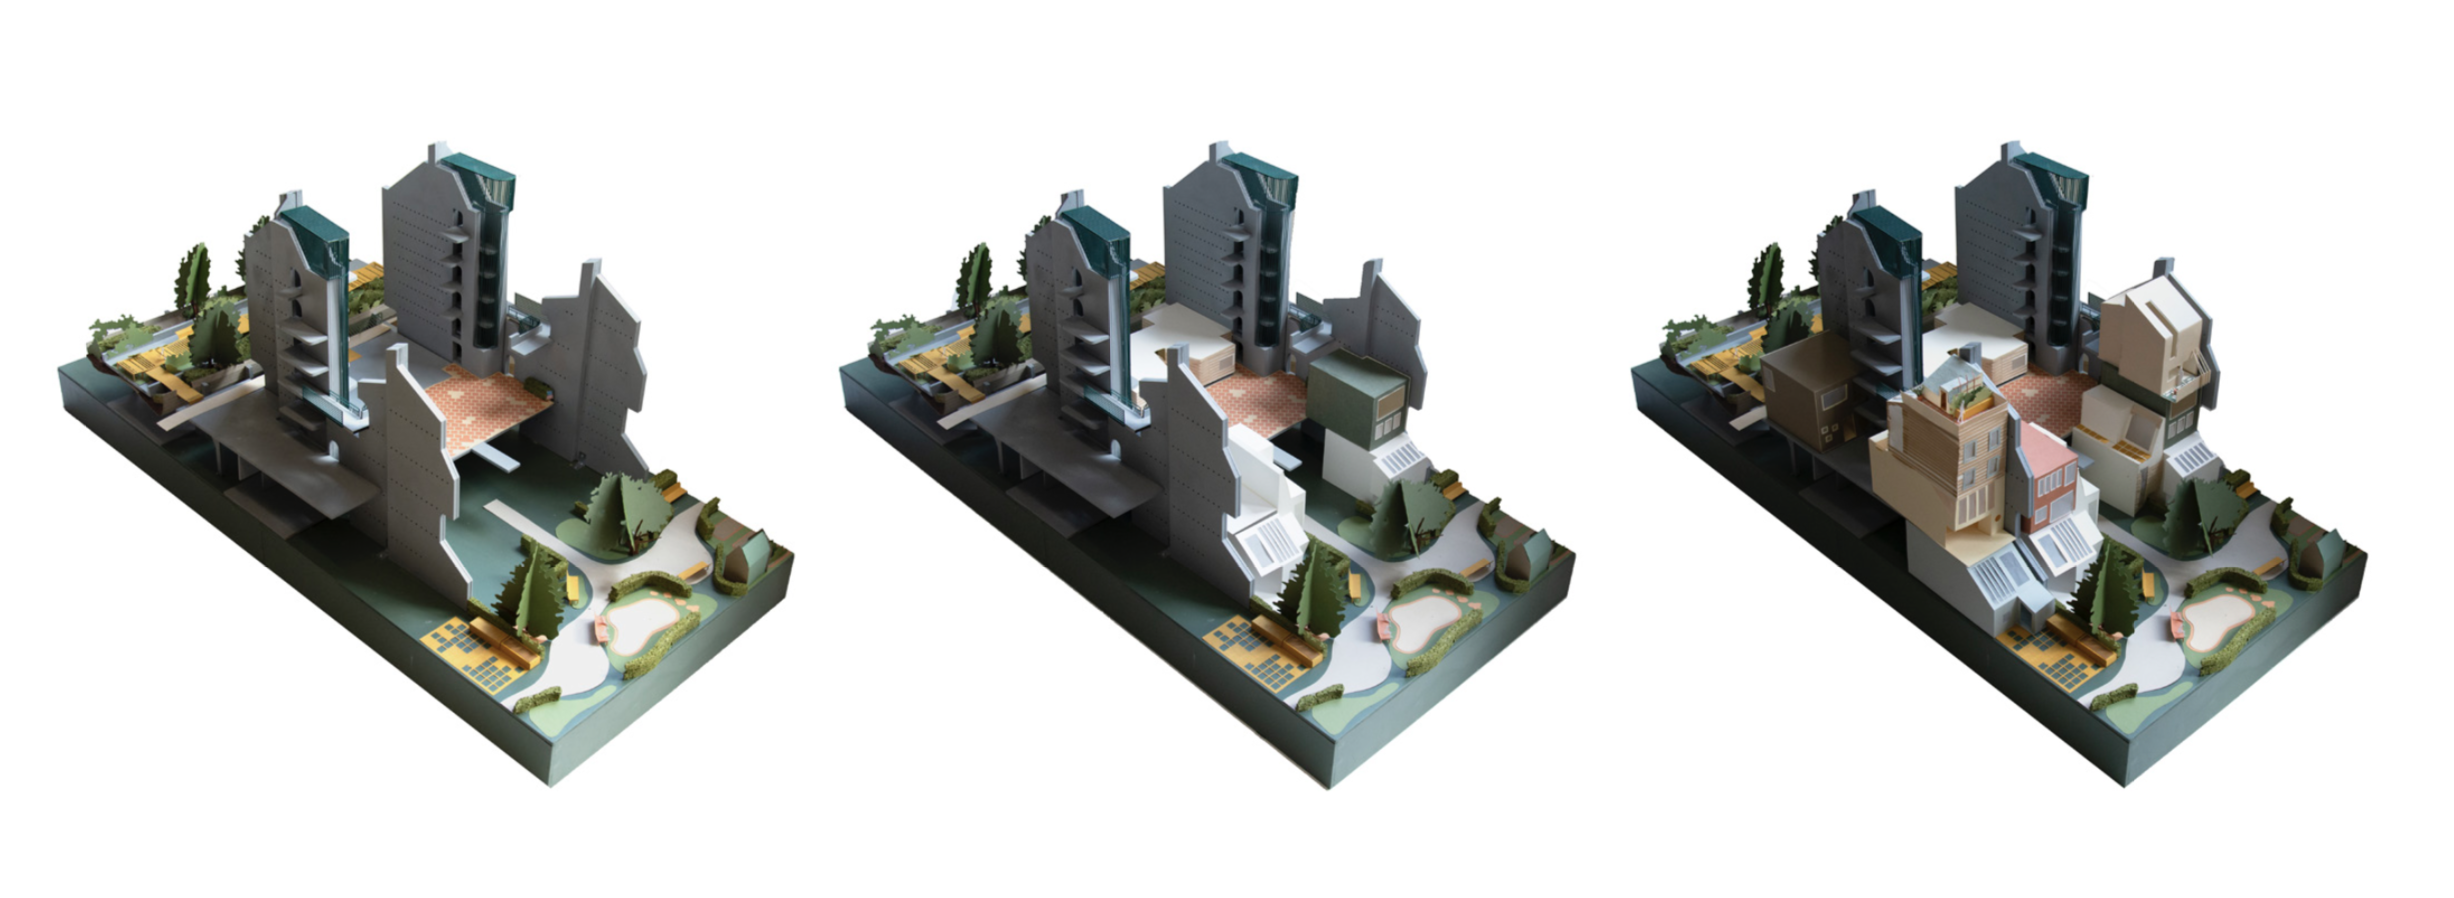 Models illustrating the concept of party walls infilled with user-modified housing blocks.